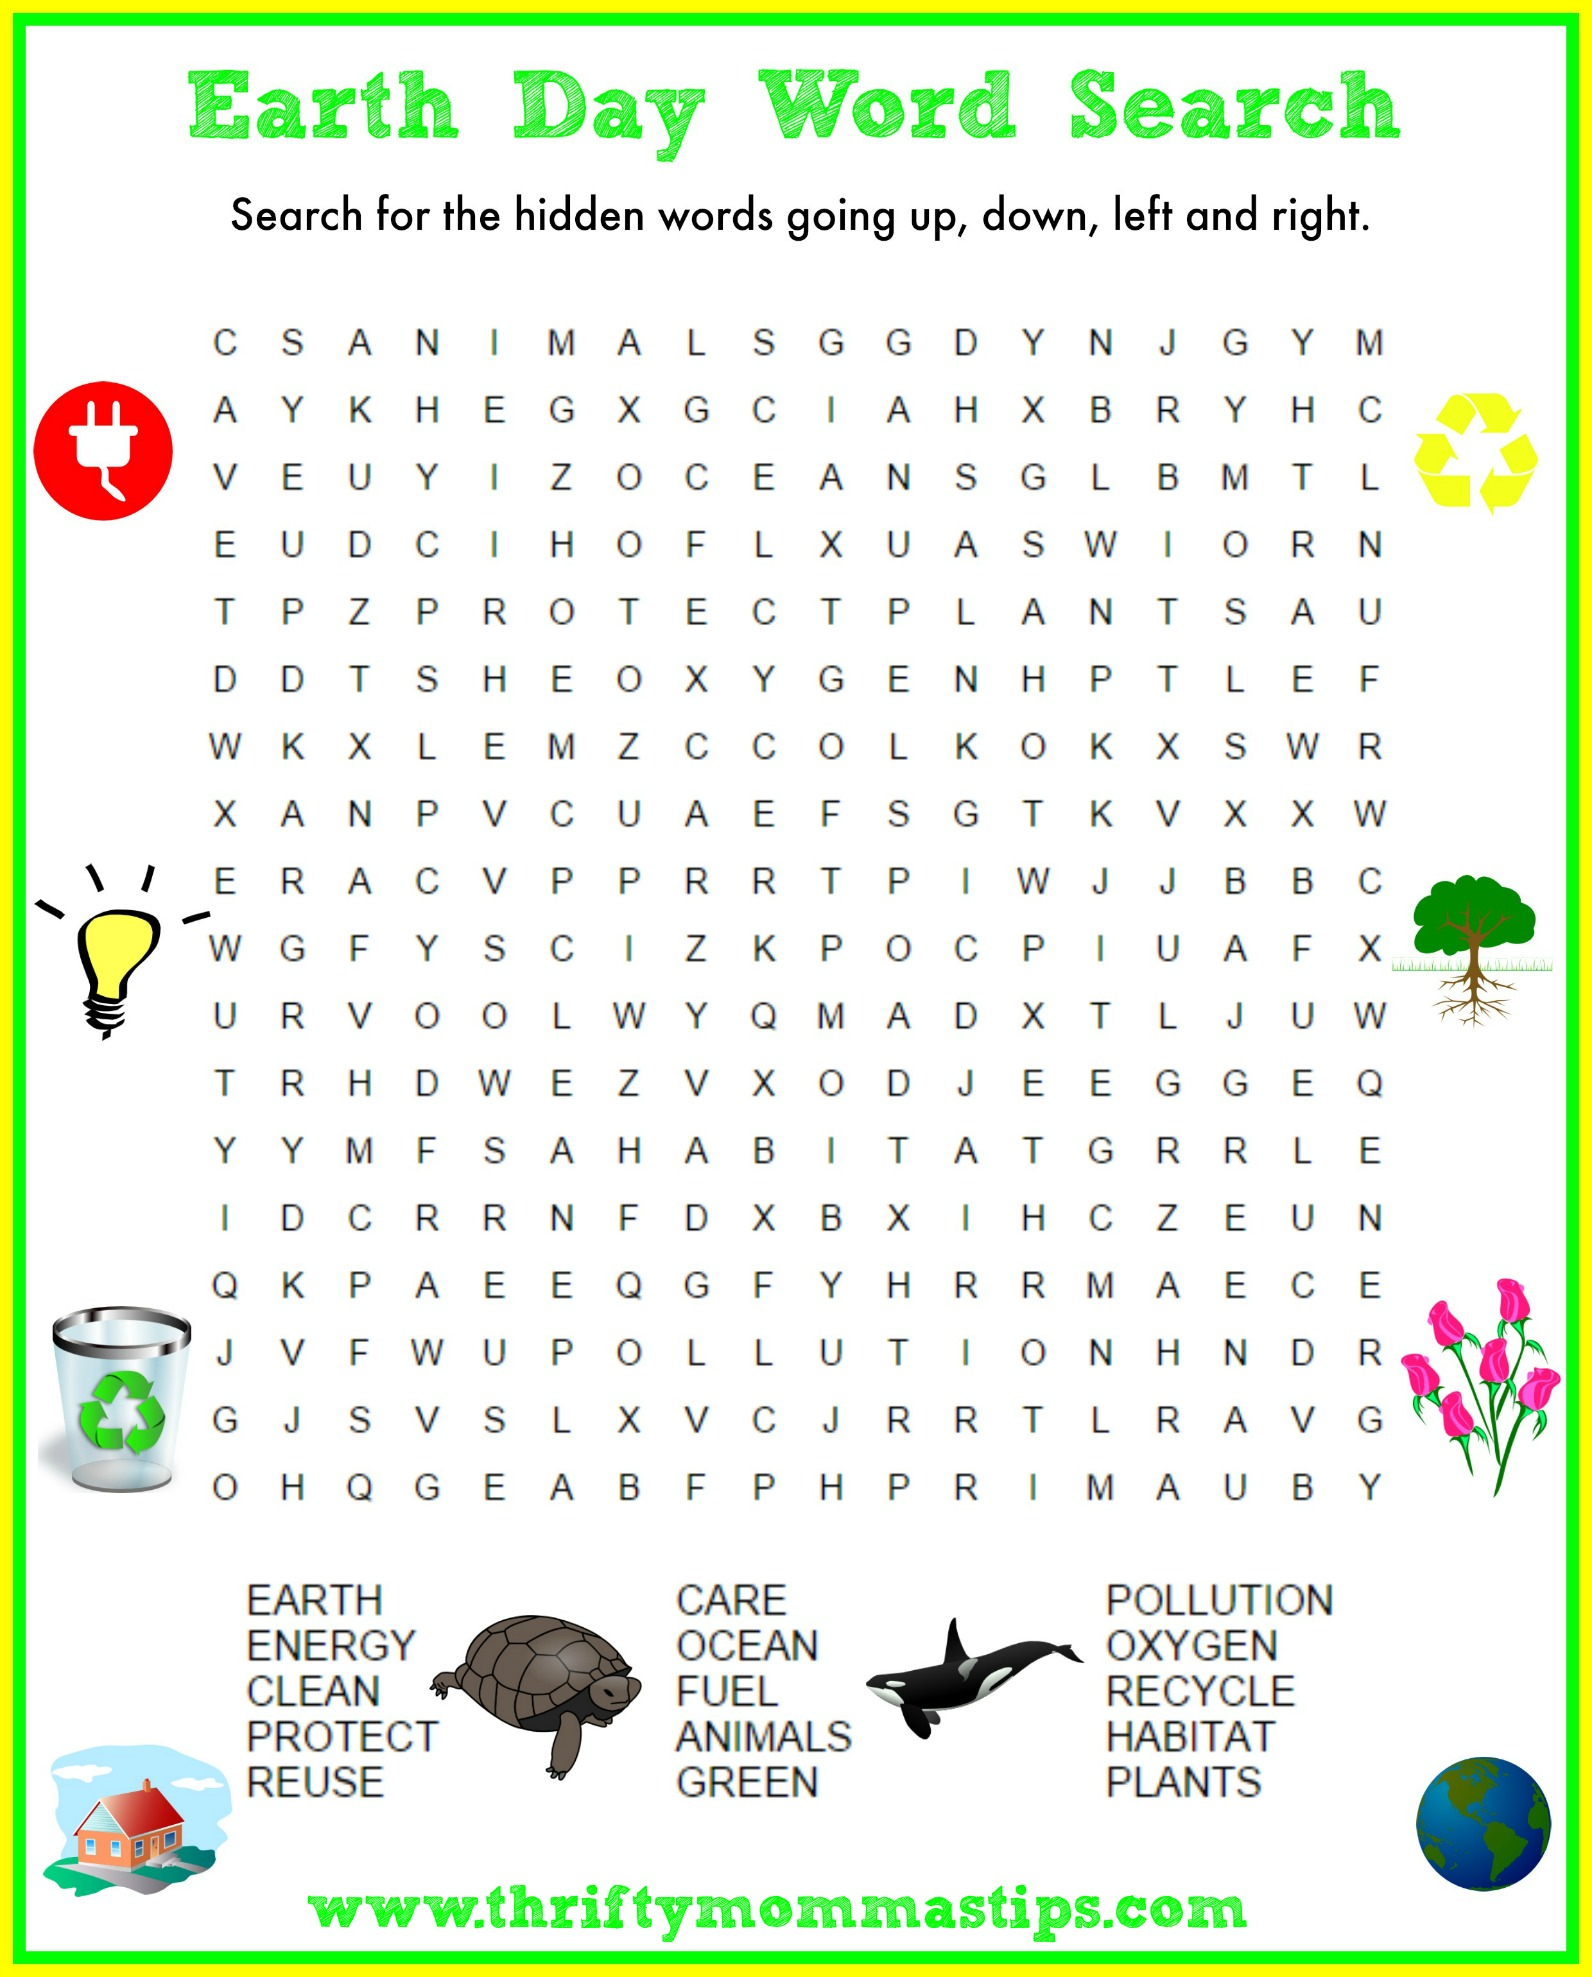 picture regarding Earth Day Crossword Puzzle Printable called Entire world Working day Crossword Puzzle - Thrifty Mommas Strategies